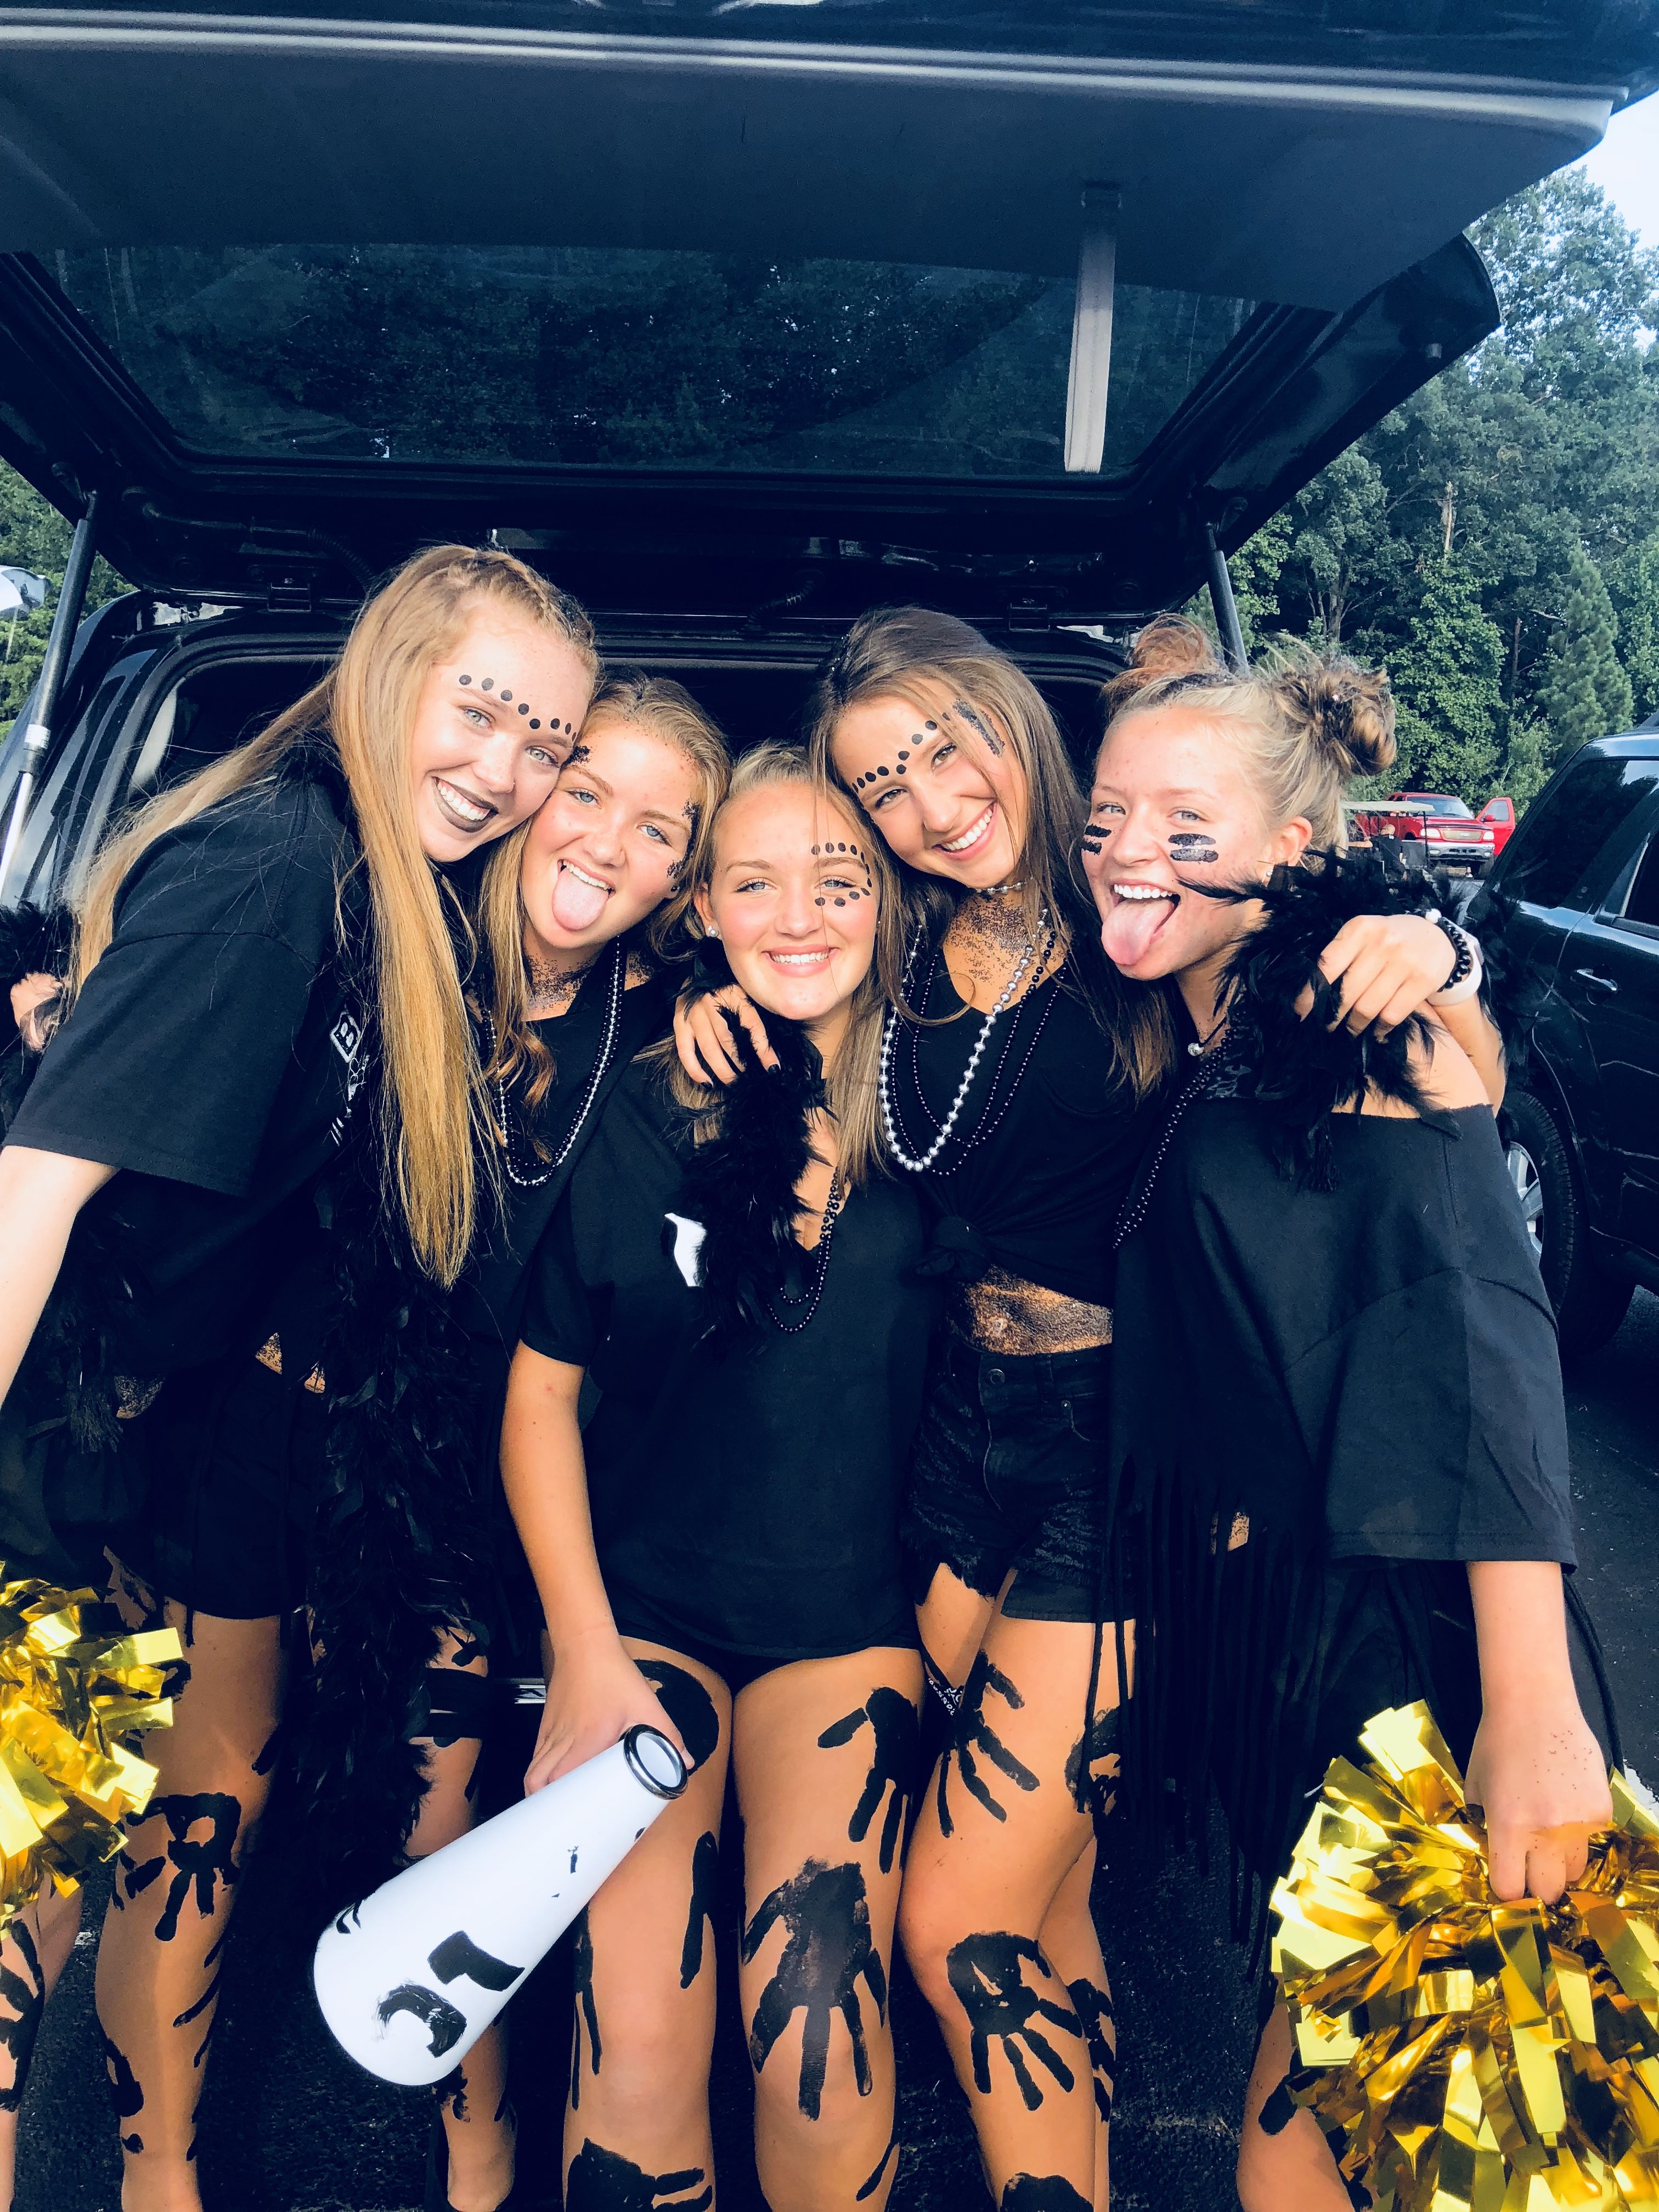 Pin by ☆leonieee☆ on football theme outfits  School spirit